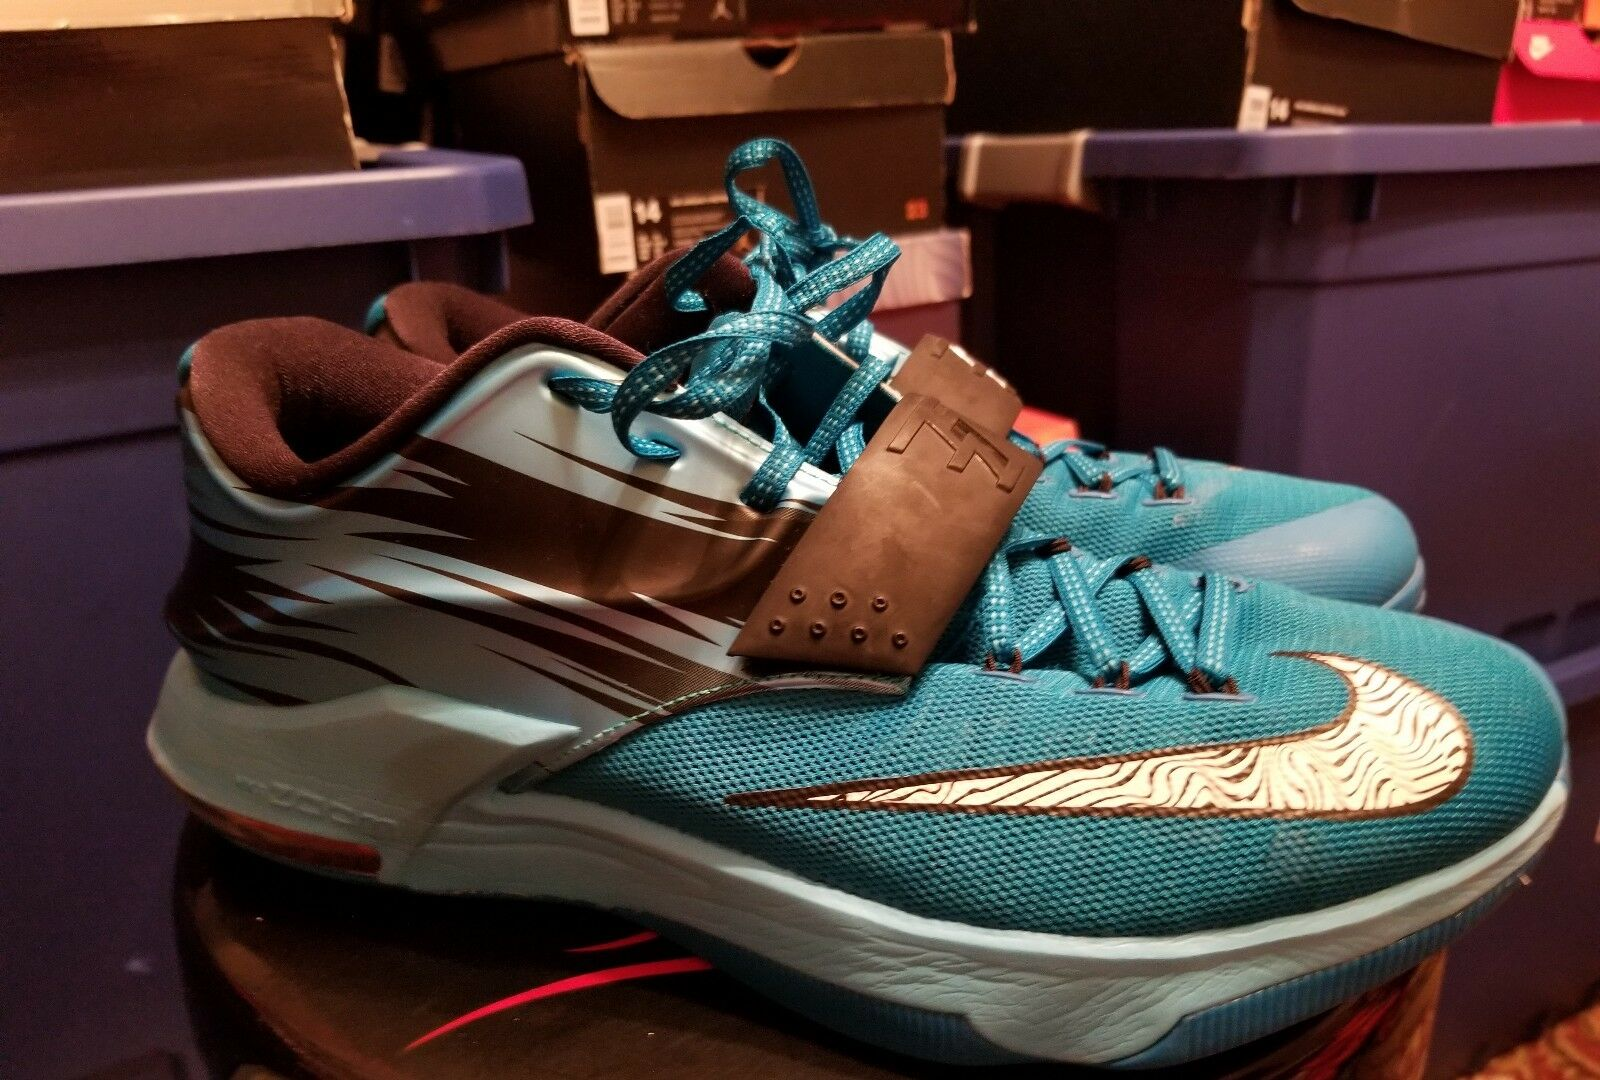 Nike KD VII 7 Light Blue Lacquer Clearwater Total Orange Size 12 653996-414